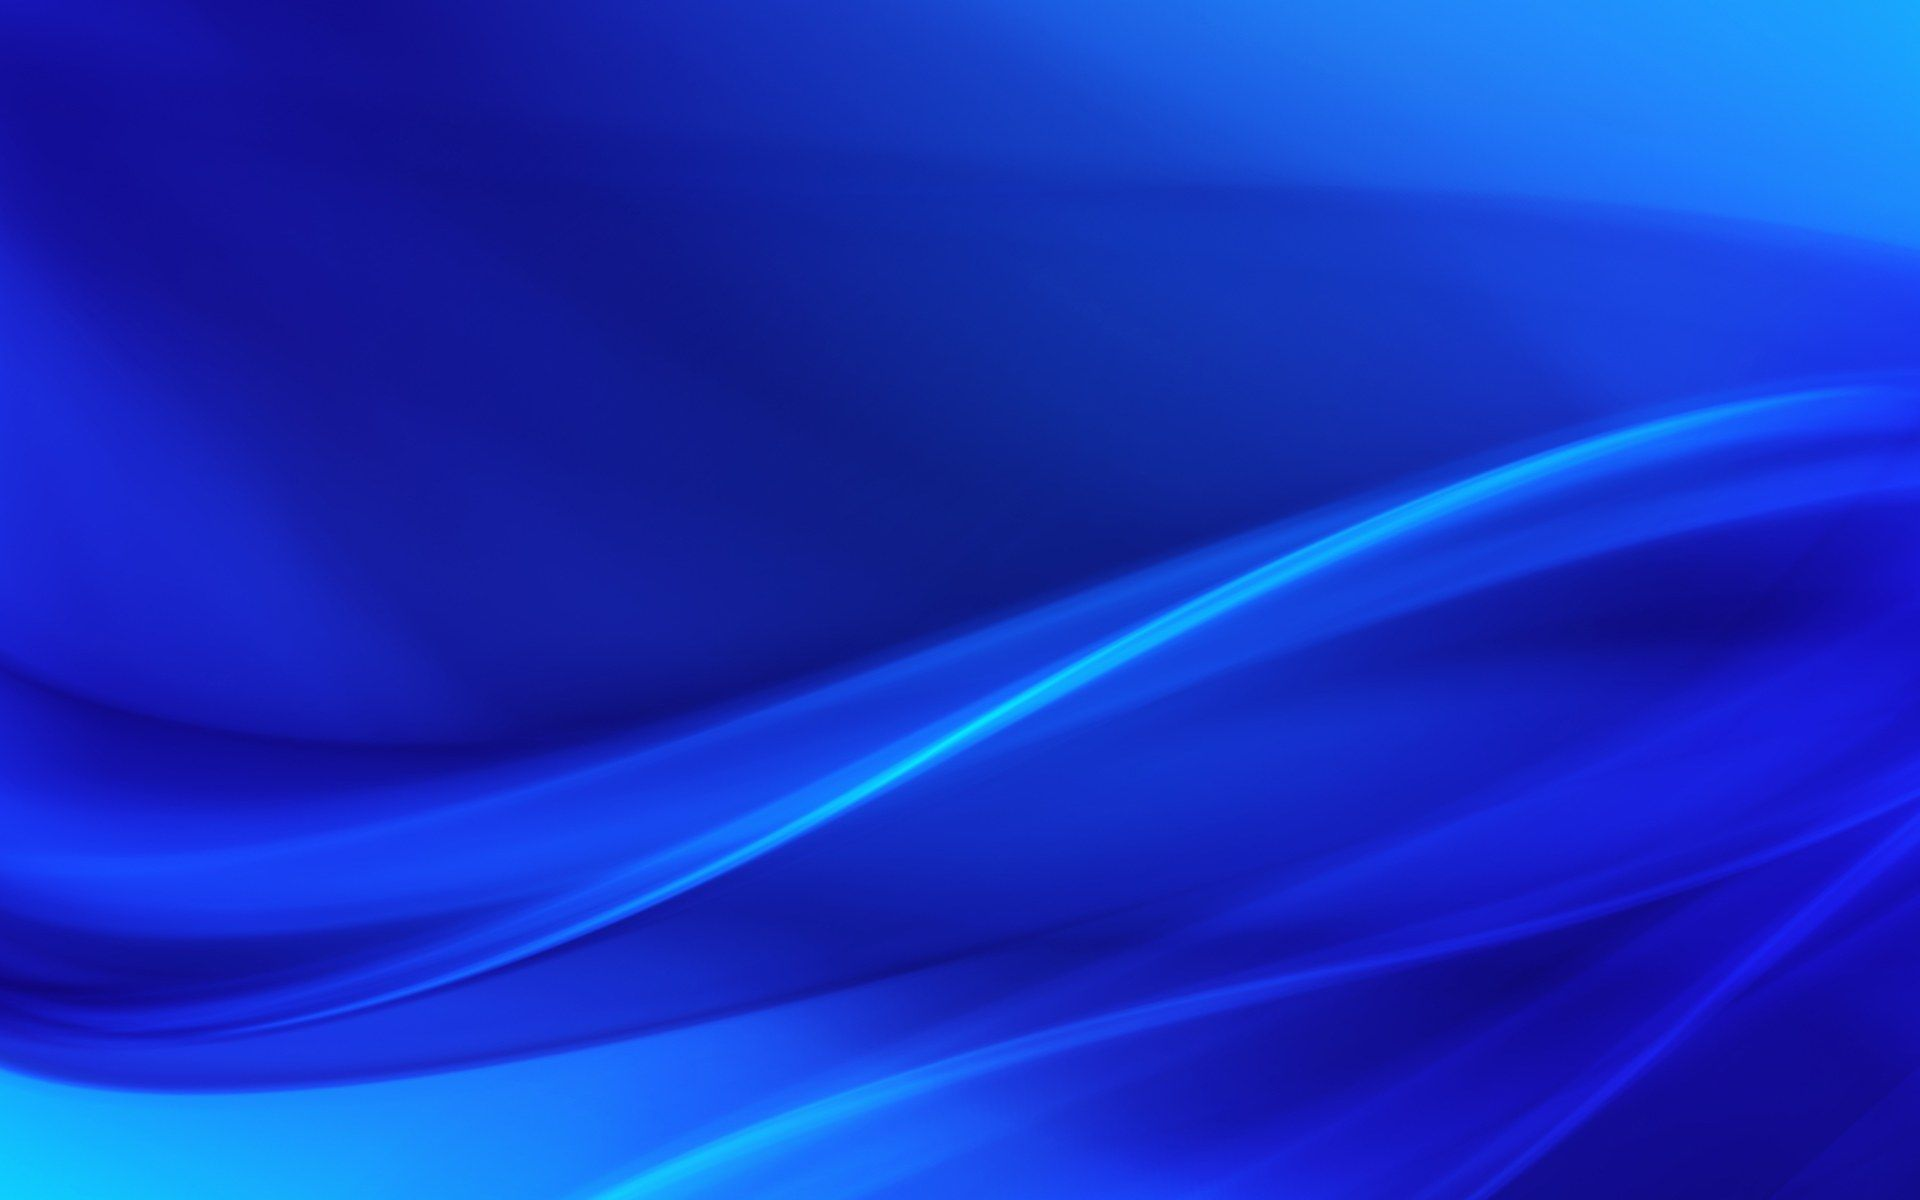 Adorable HDQ Backgrounds of Blue